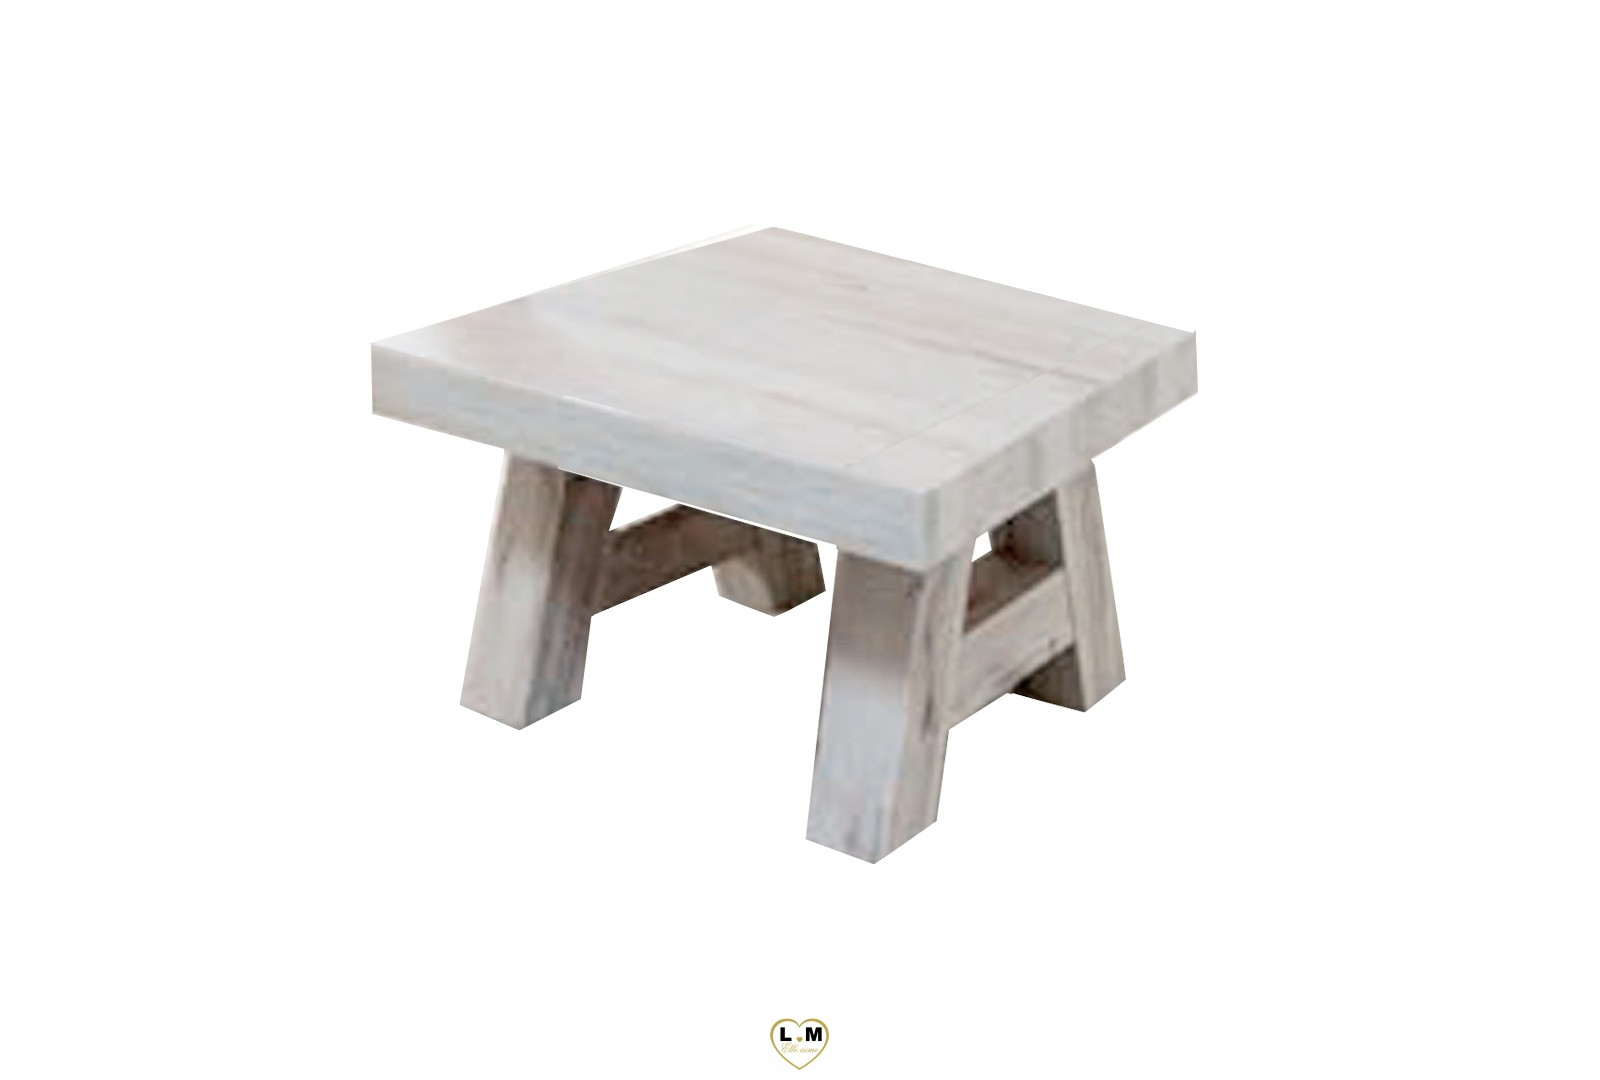 Emejing table salle a manger blanc vieilli pictures for Renovation table salle a manger